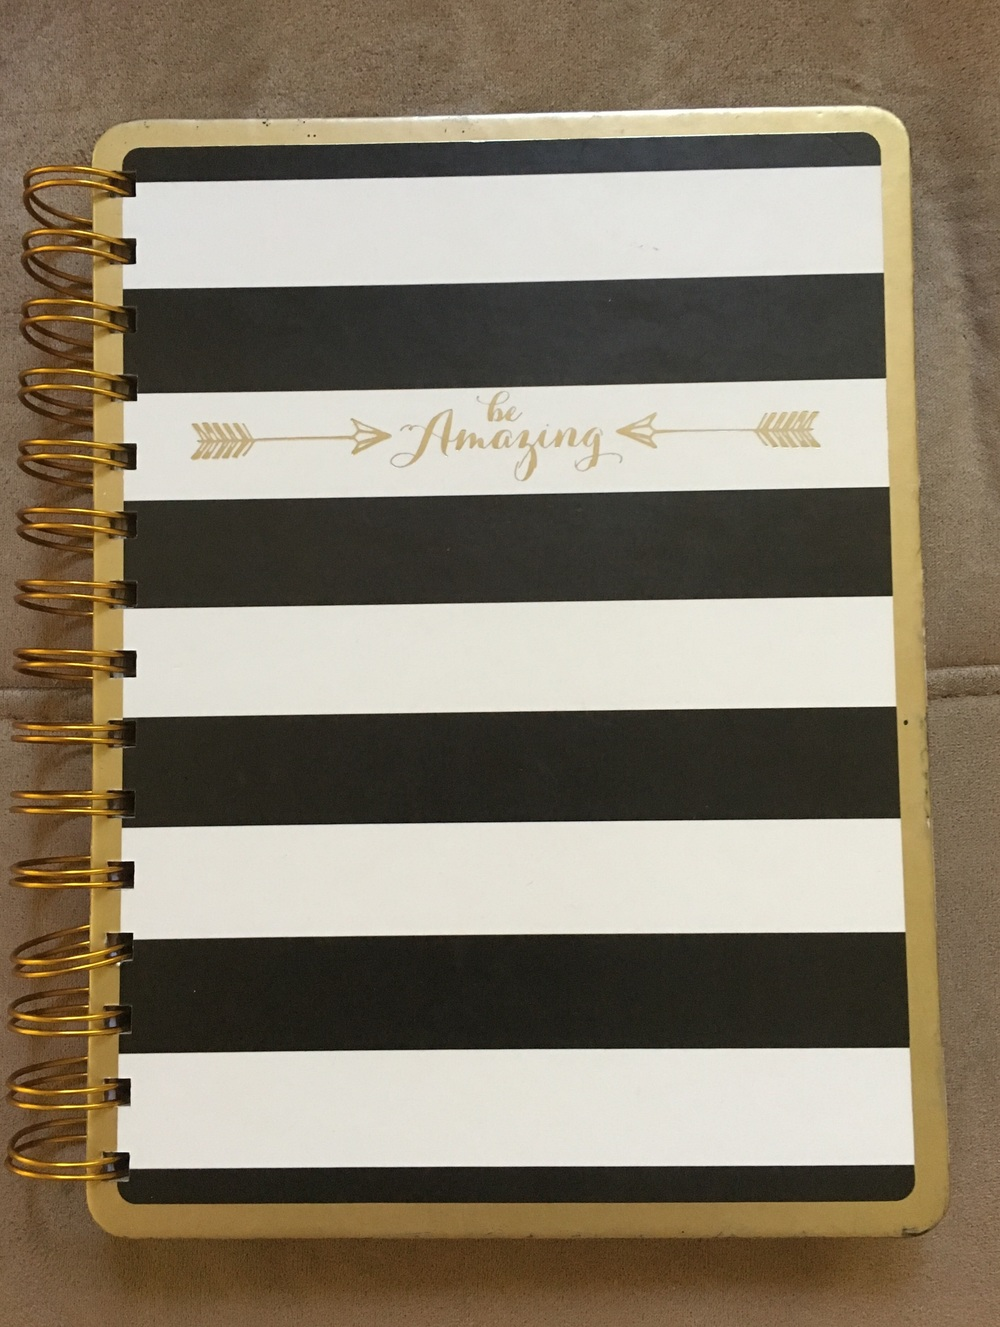 Bonus if your journal is as cute as this $4 one from Home Goods! :)